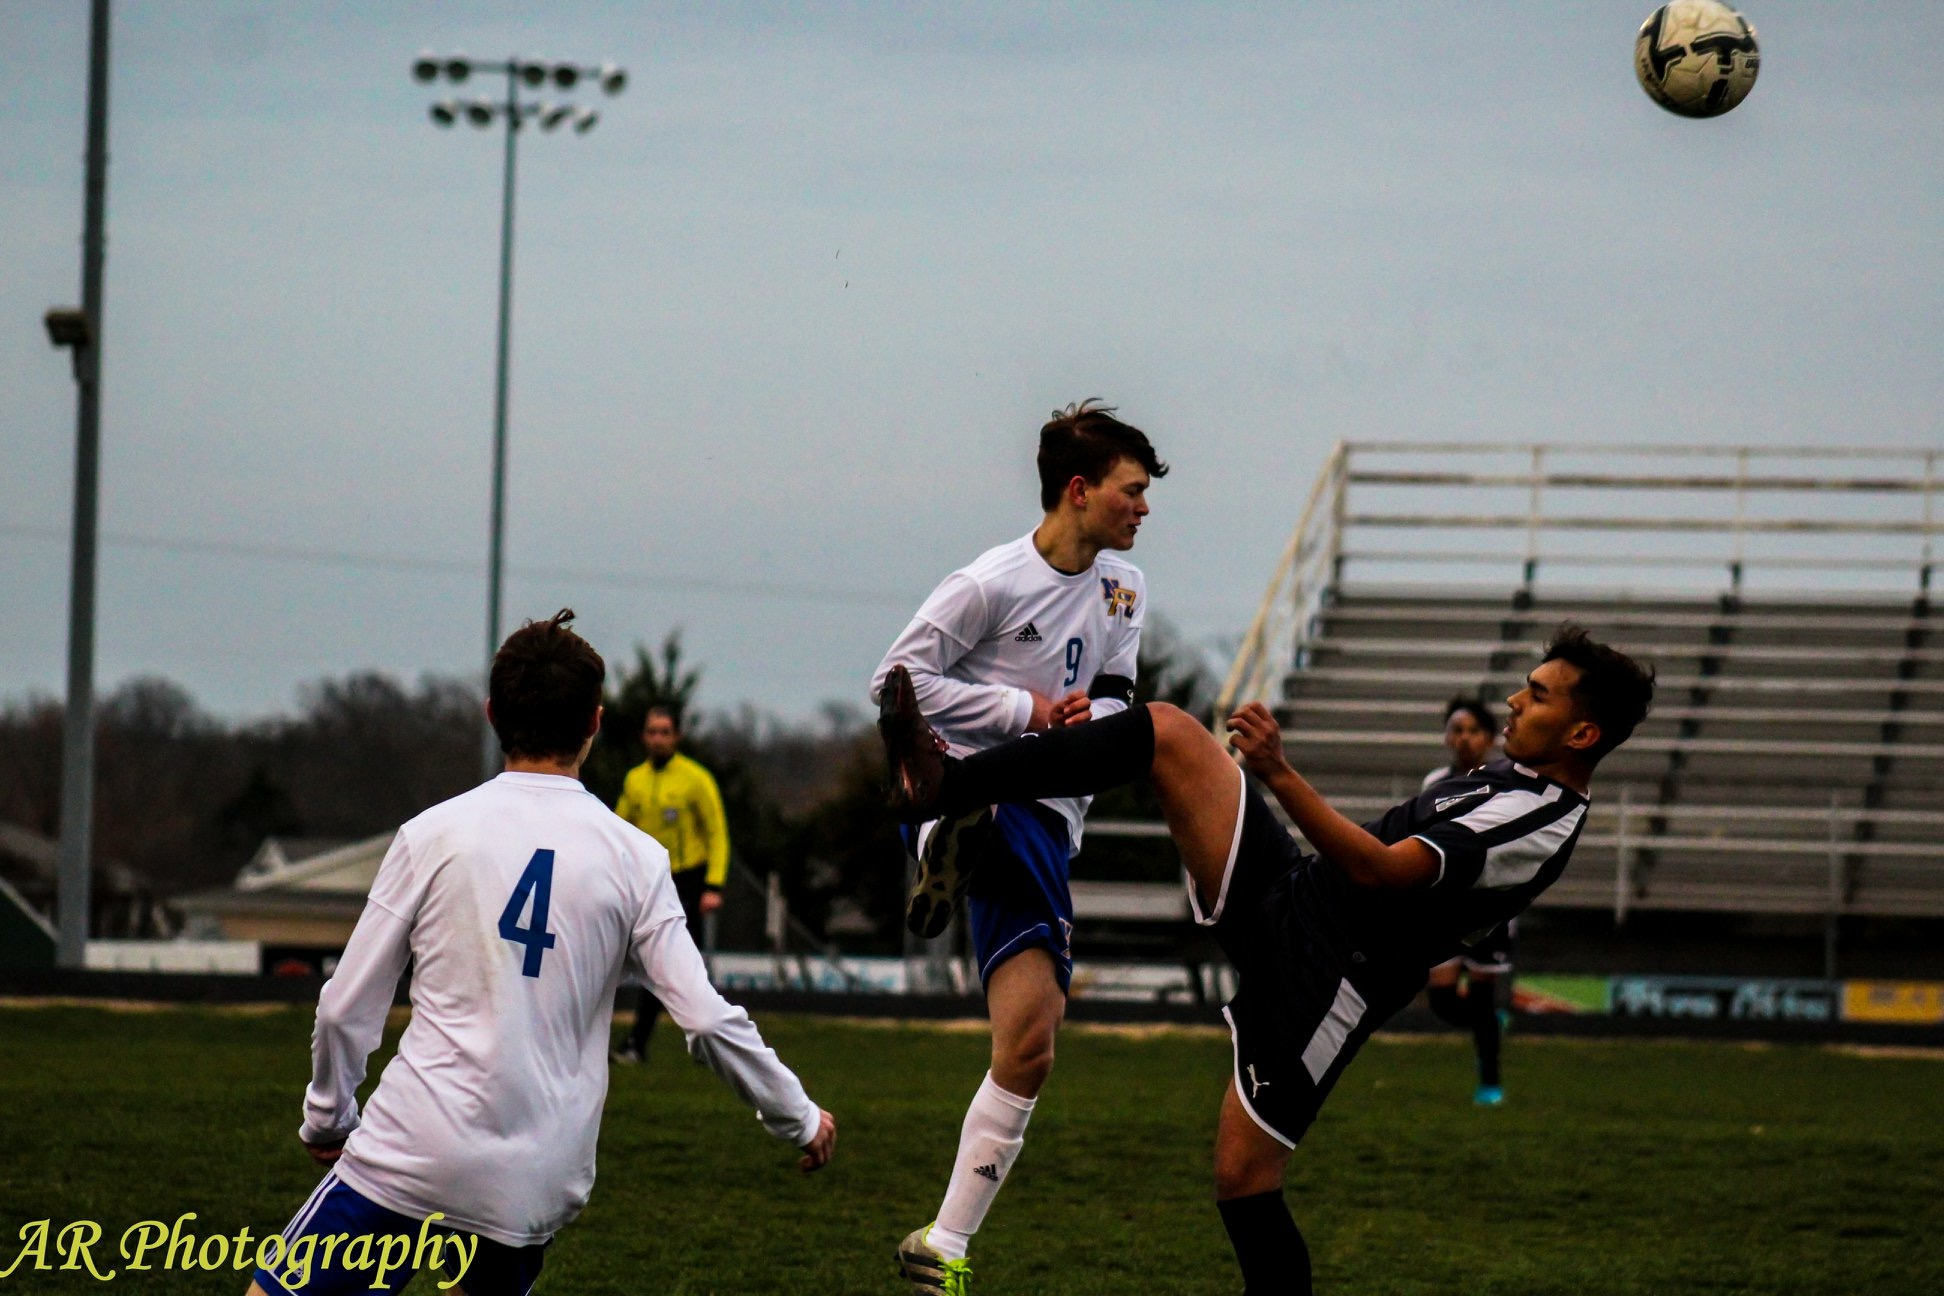 Matthew Meredith with a header while fending off a judo attack 😀